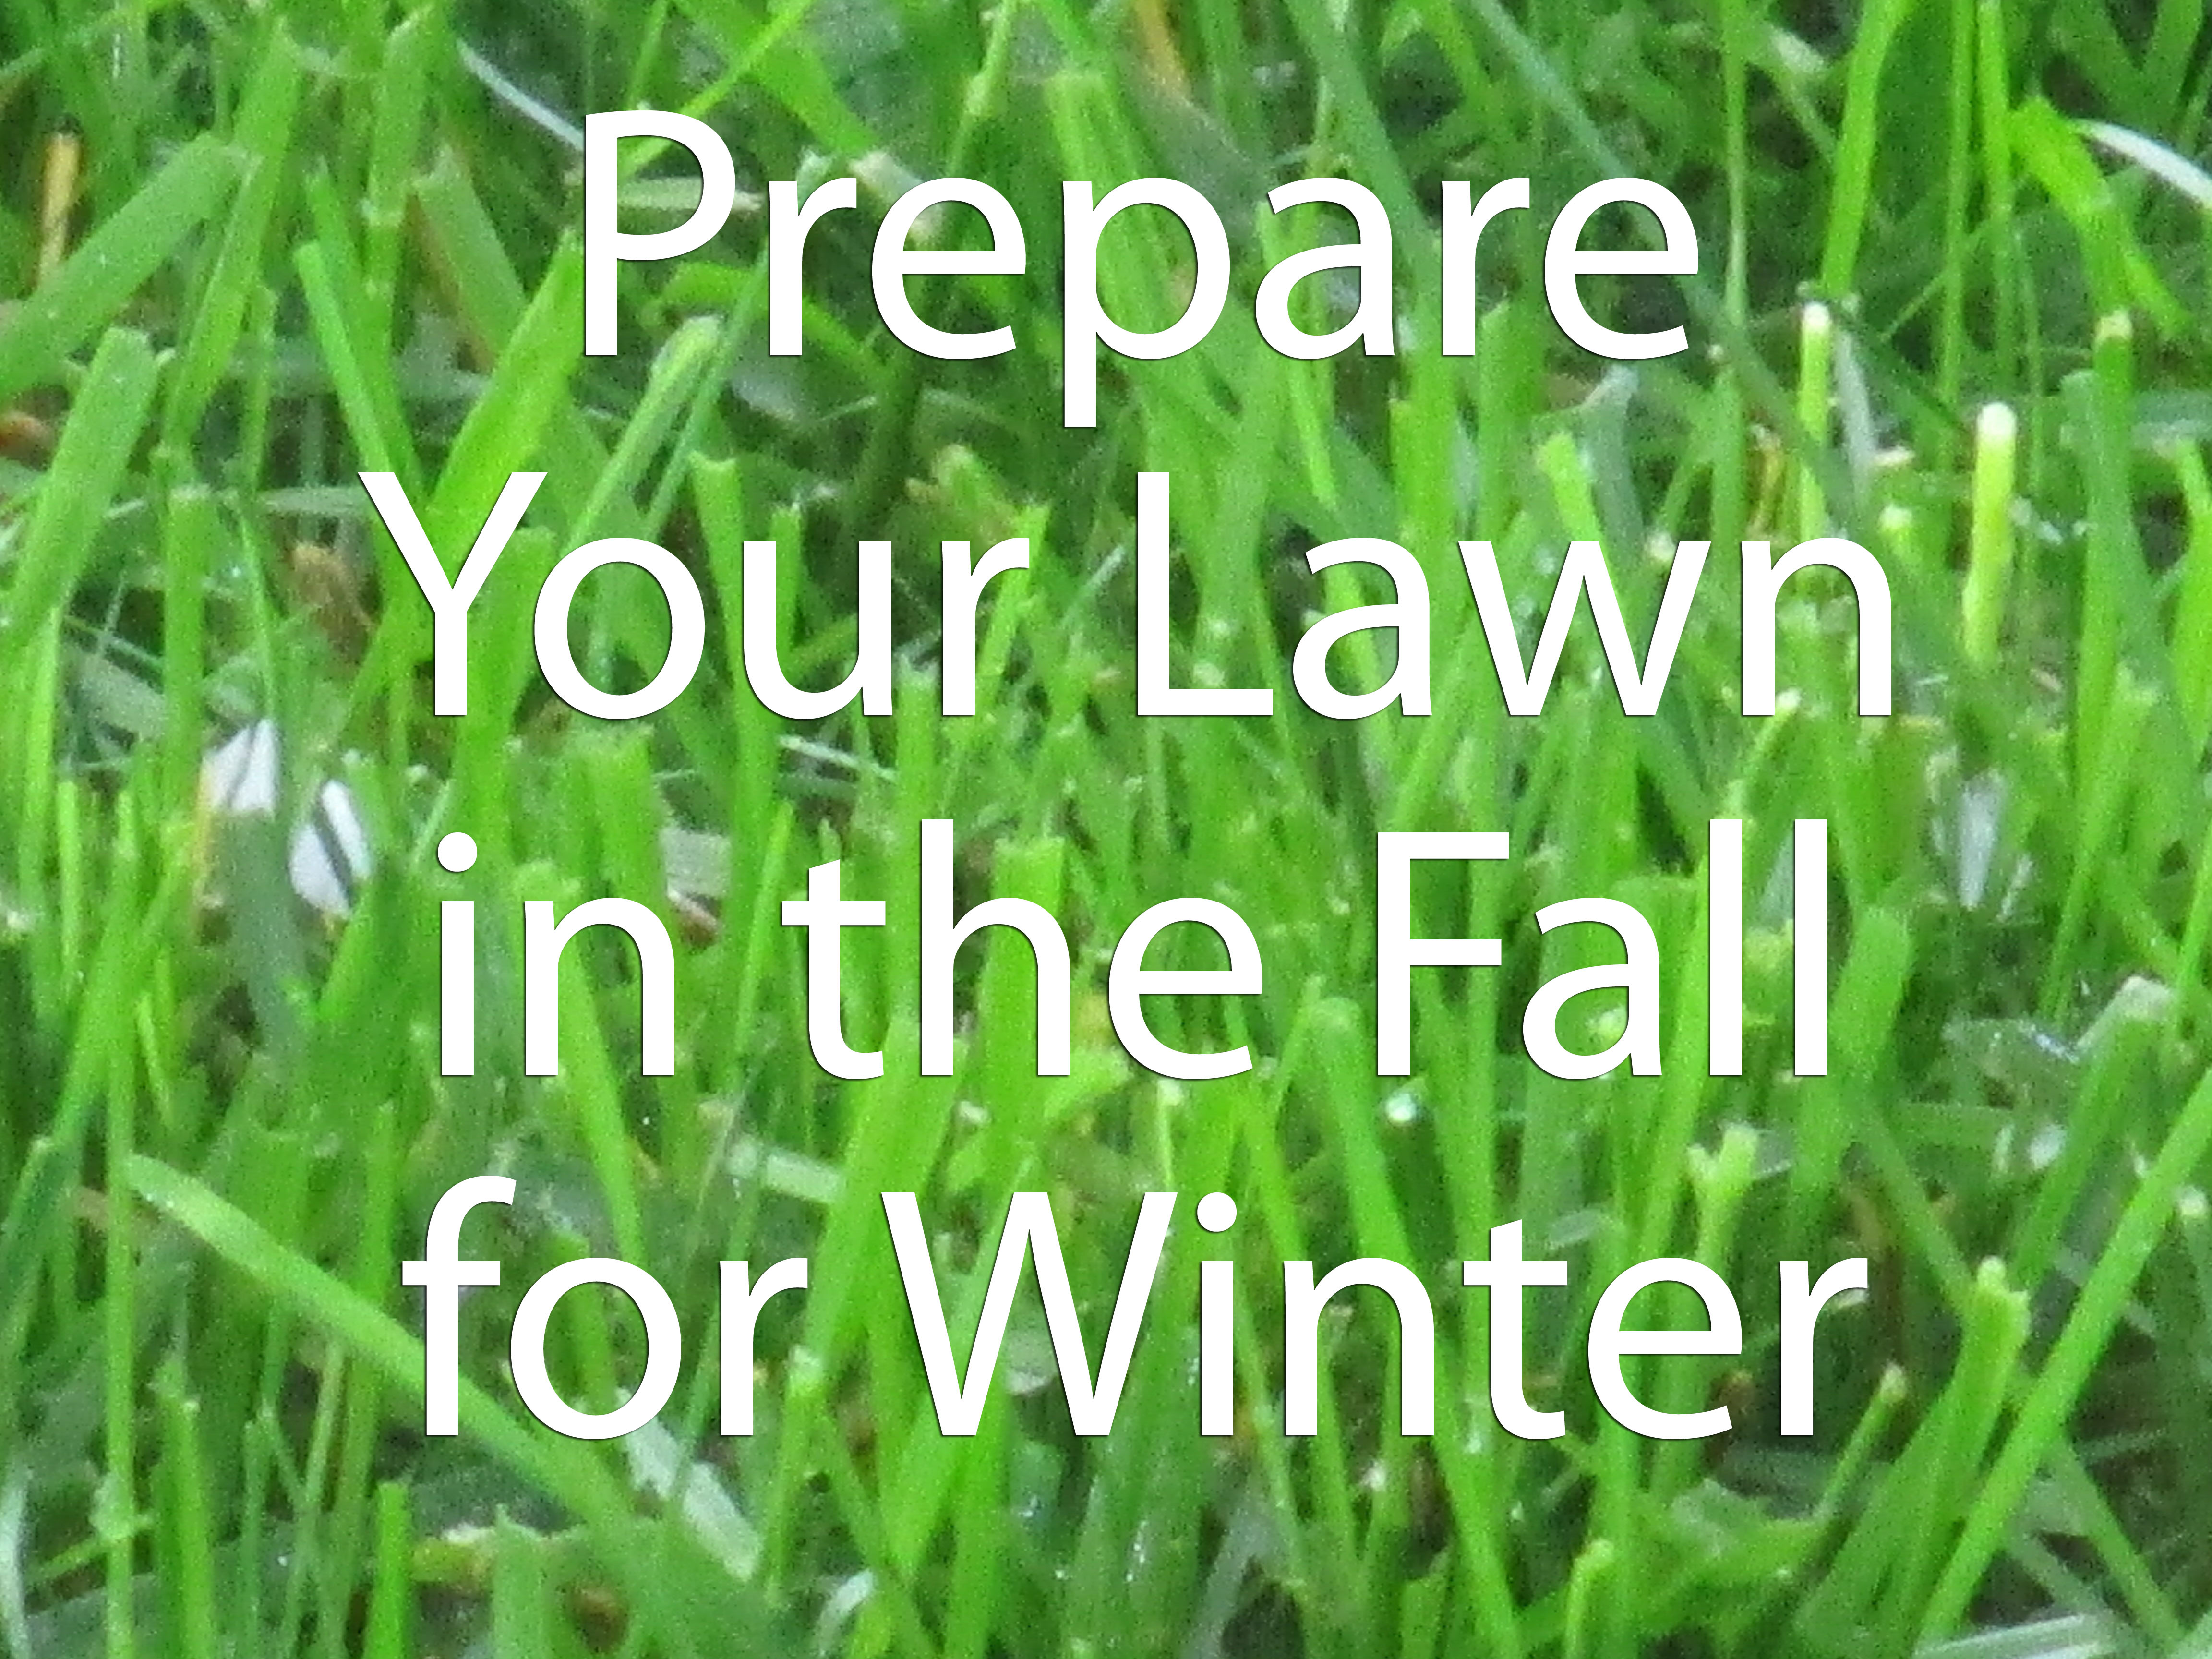 Prepare Lawn For Winter prepare your lawn in the fall for winter | sibcy cline blog